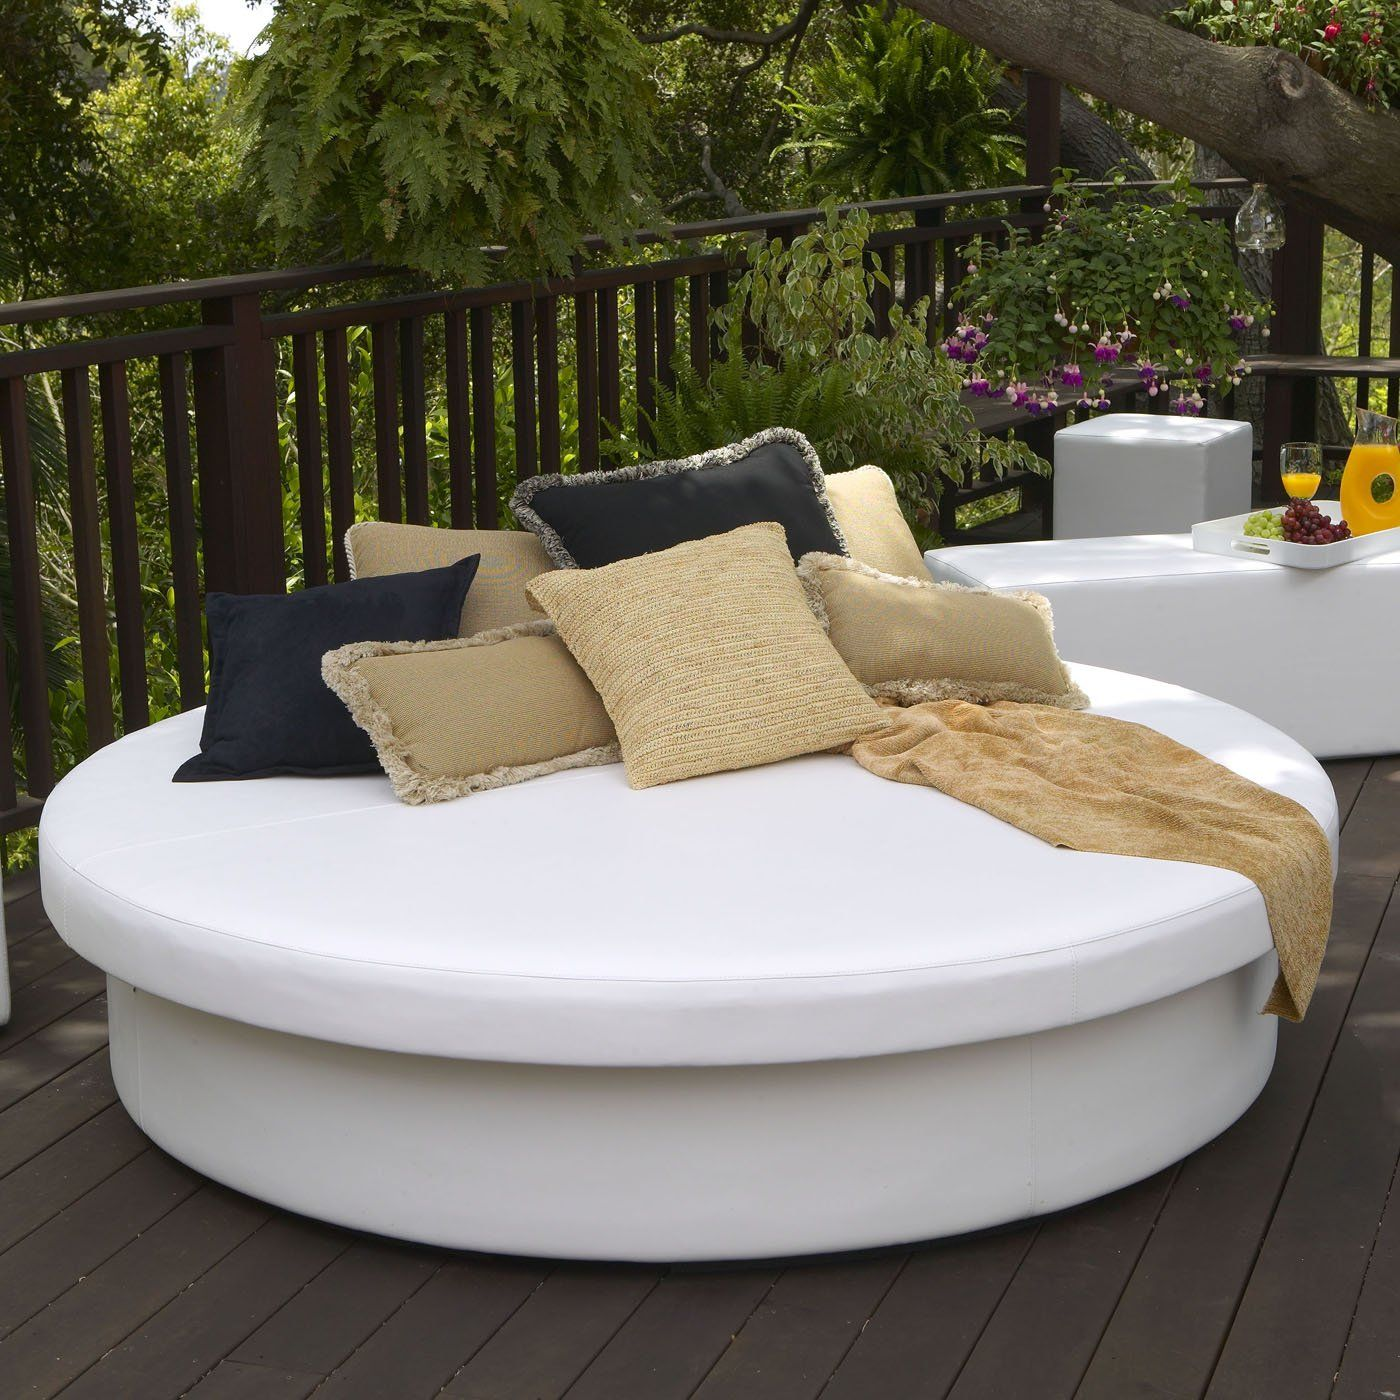 La-Fete Designs SUN PAD Outdoor Sun Round Resort Daybed - ATG Stores